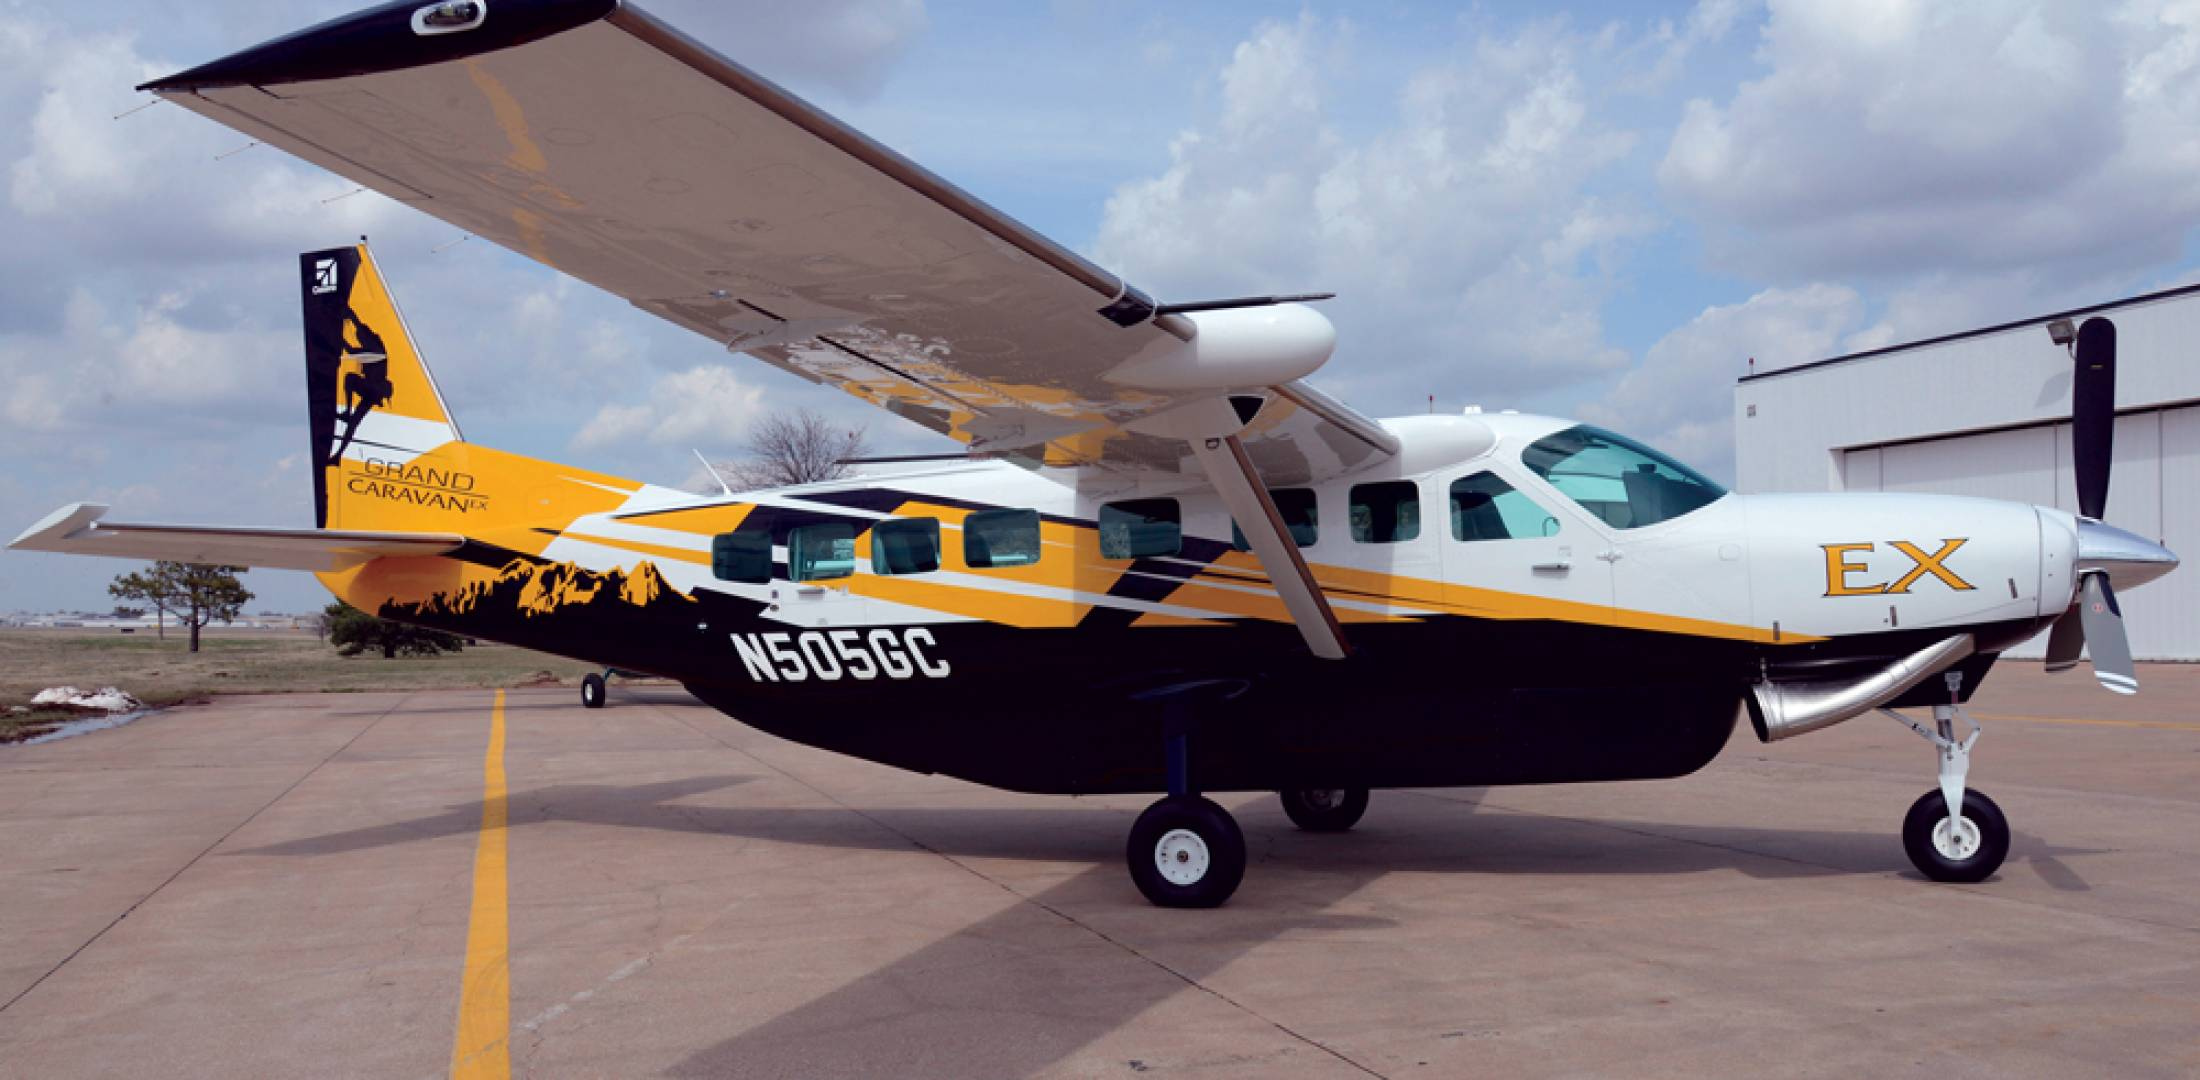 The $2.4 million Grand Caravan EX upgrades the venerable workhorse with an  867-shp PT6